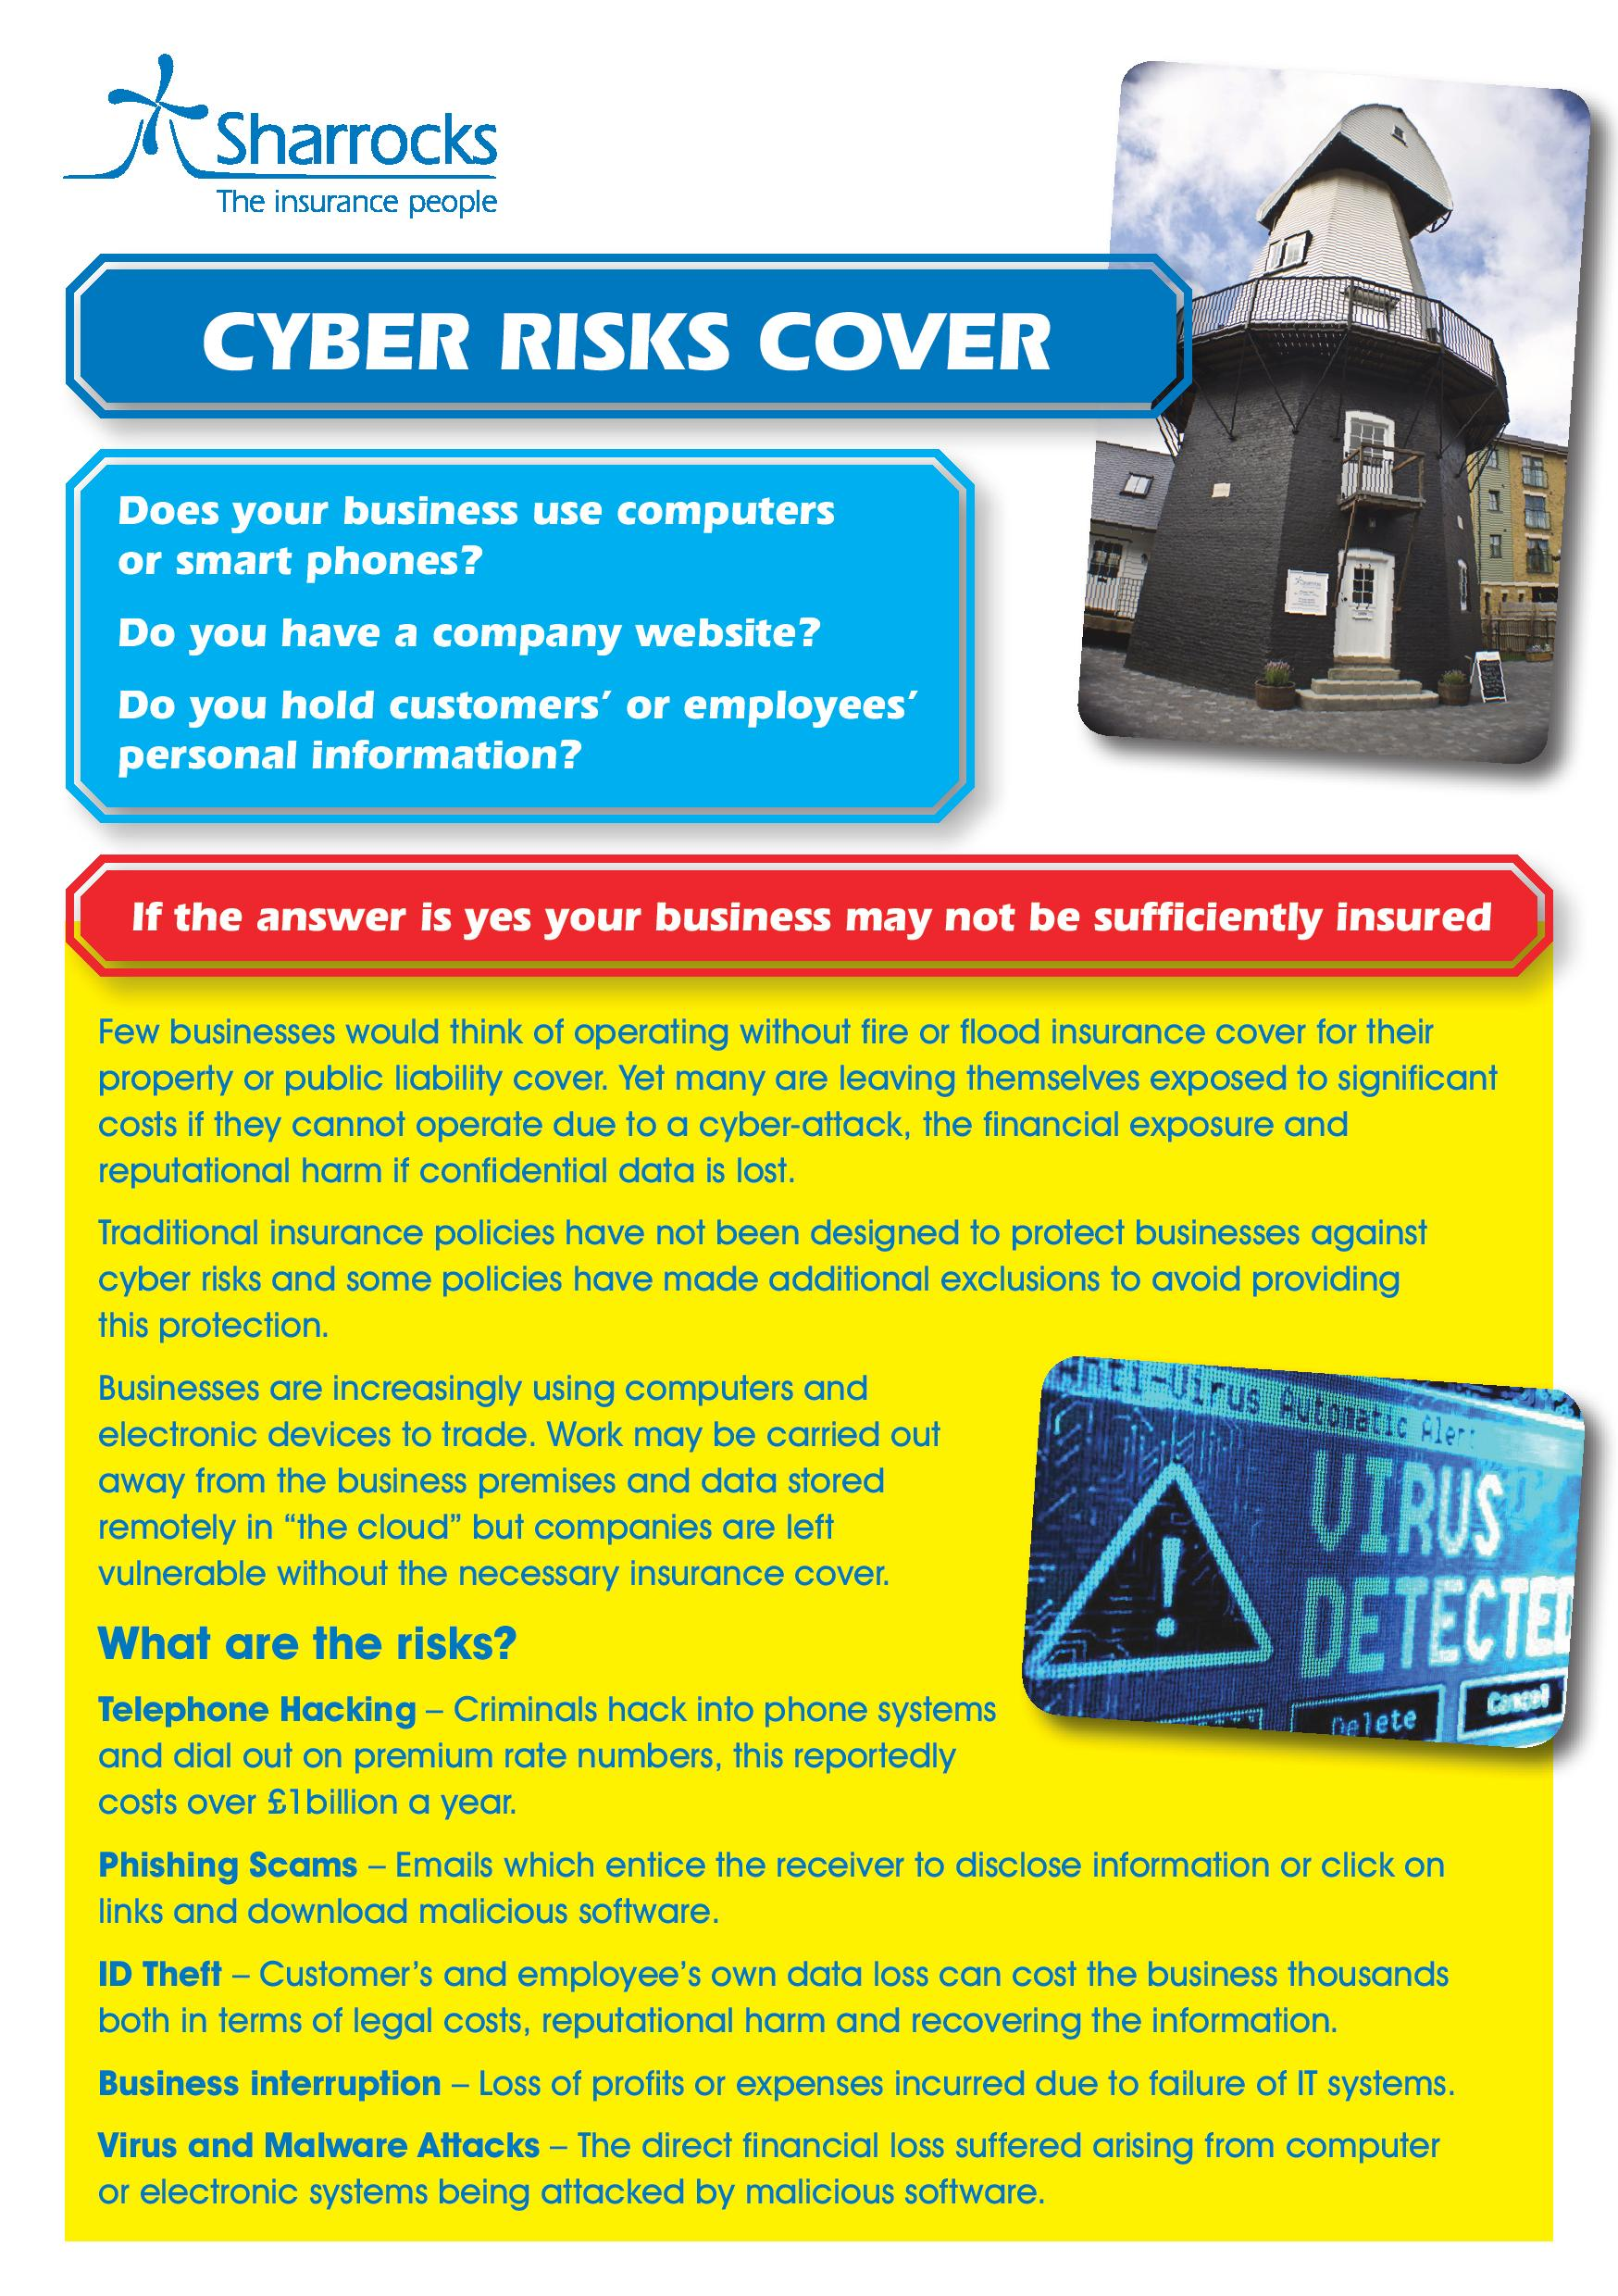 Cyber Risks Cover Information